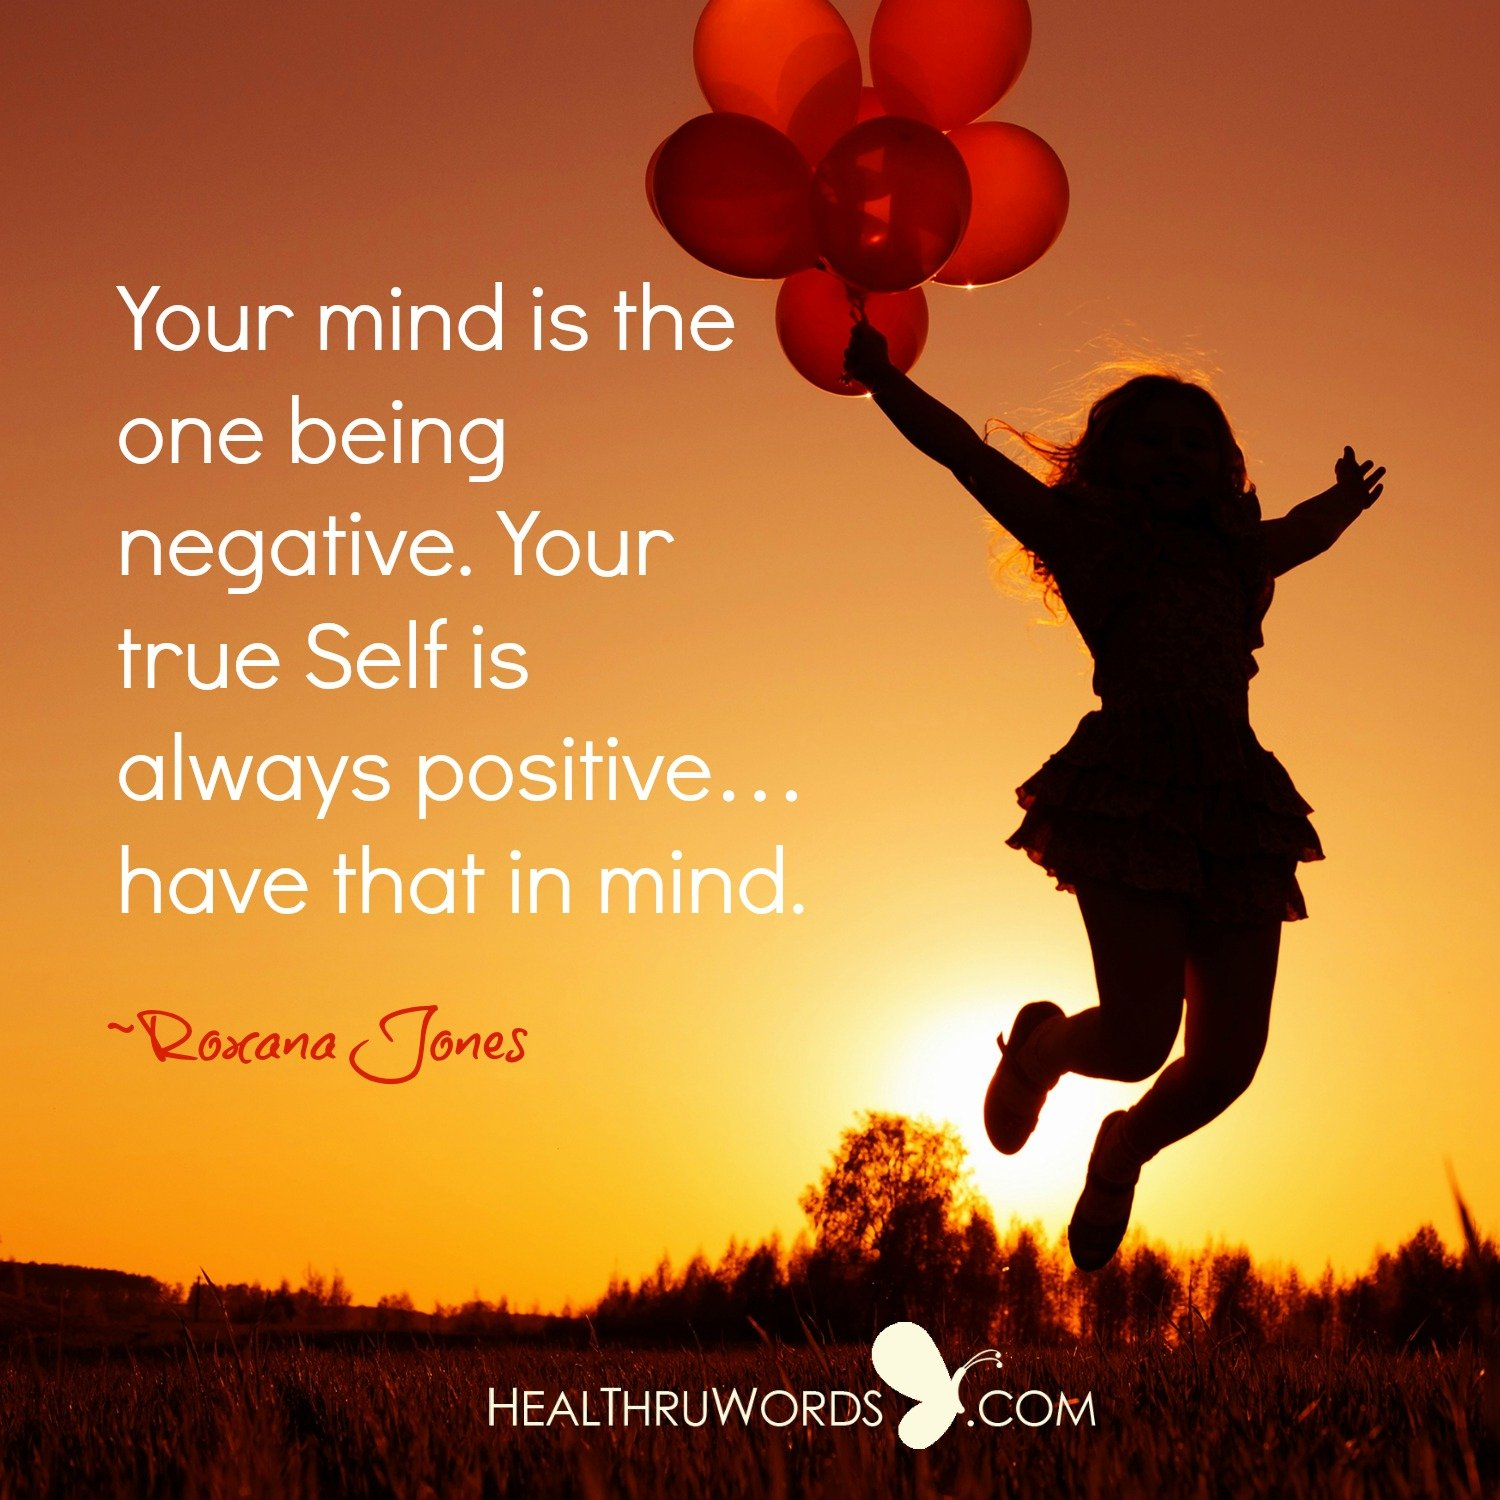 Inspirational Image: Mental Negativity